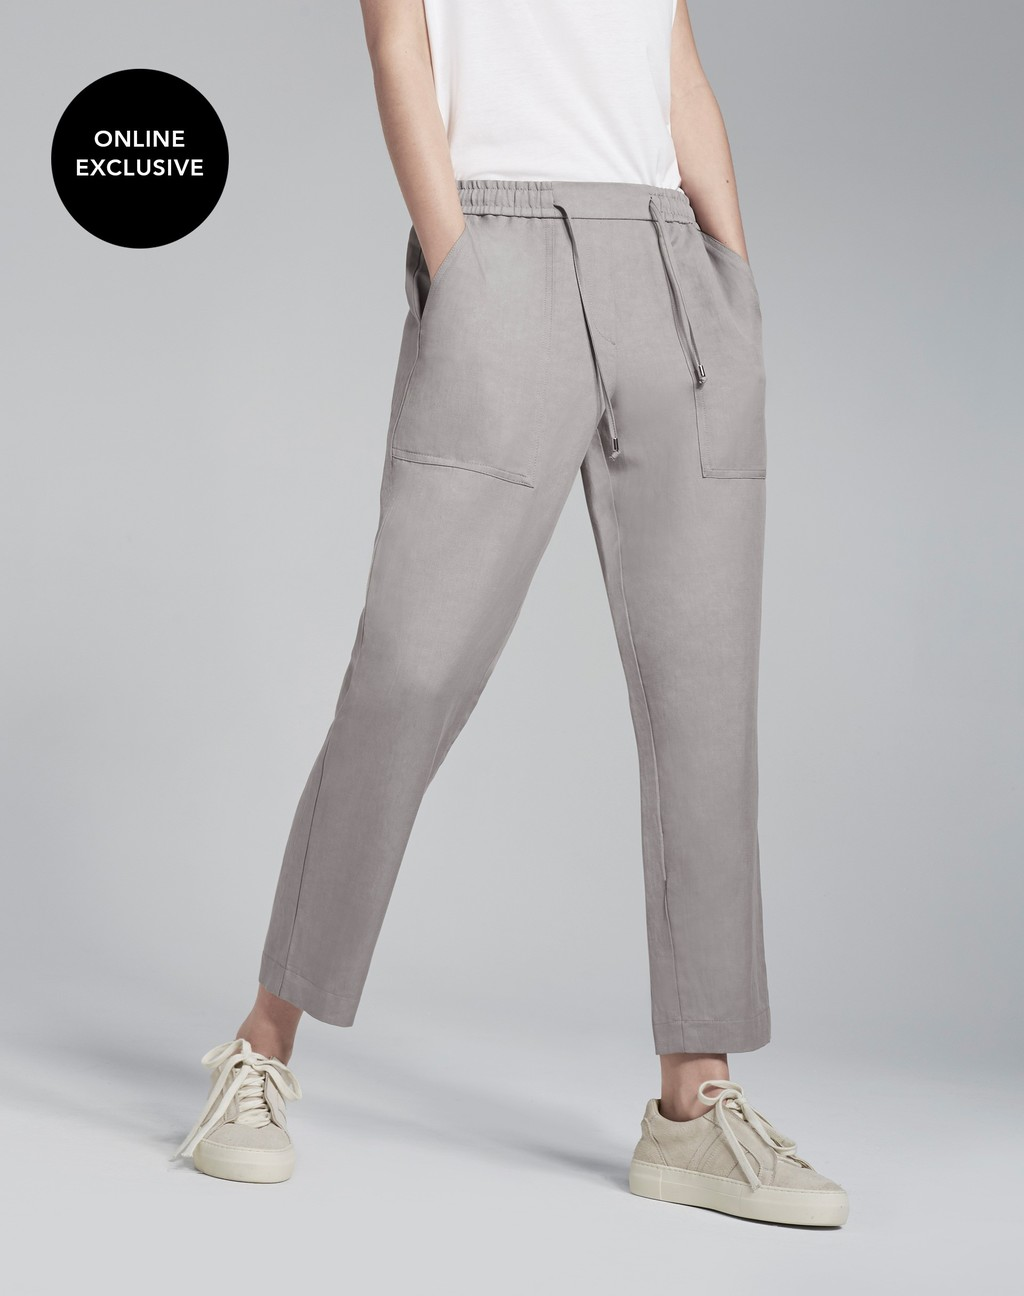 Summer Cargo Pant Mink - length: standard; pattern: plain; waist: mid/regular rise; style: cargo; predominant colour: light grey; occasions: casual; fibres: linen - 100%; fit: slim leg; pattern type: fabric; texture group: woven light midweight; season: s/s 2016; wardrobe: basic